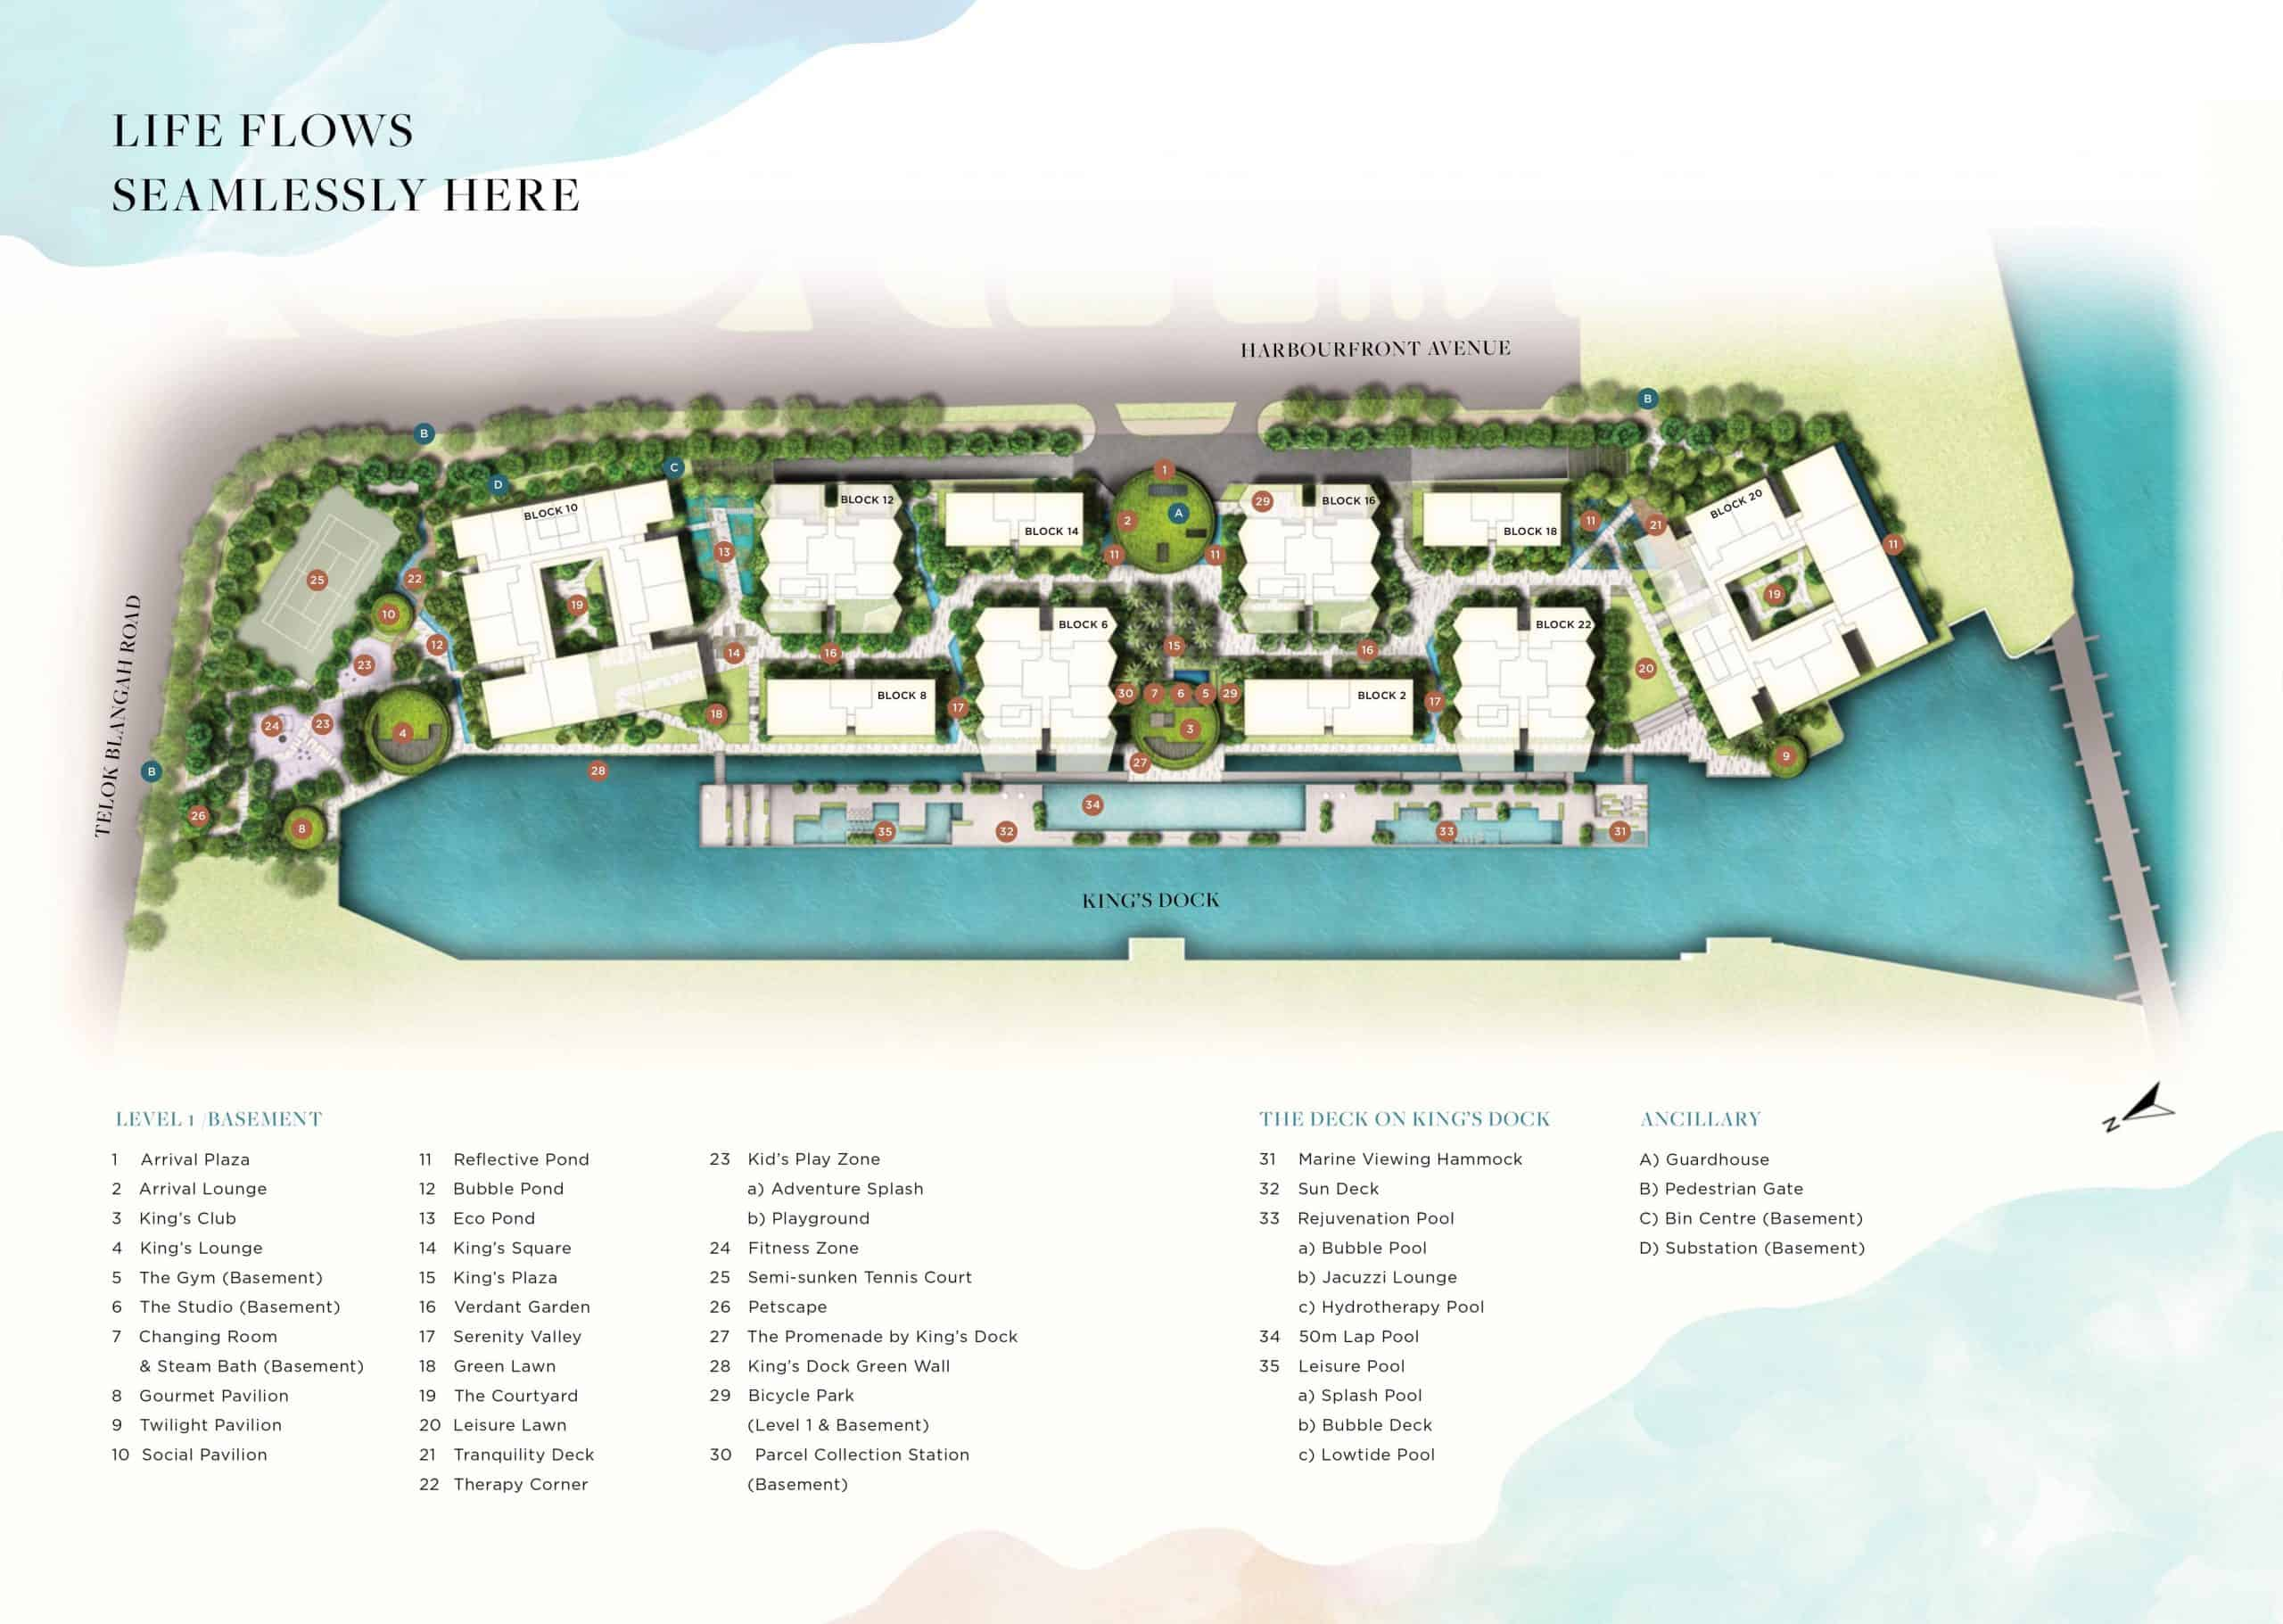 The Reef Site Plan